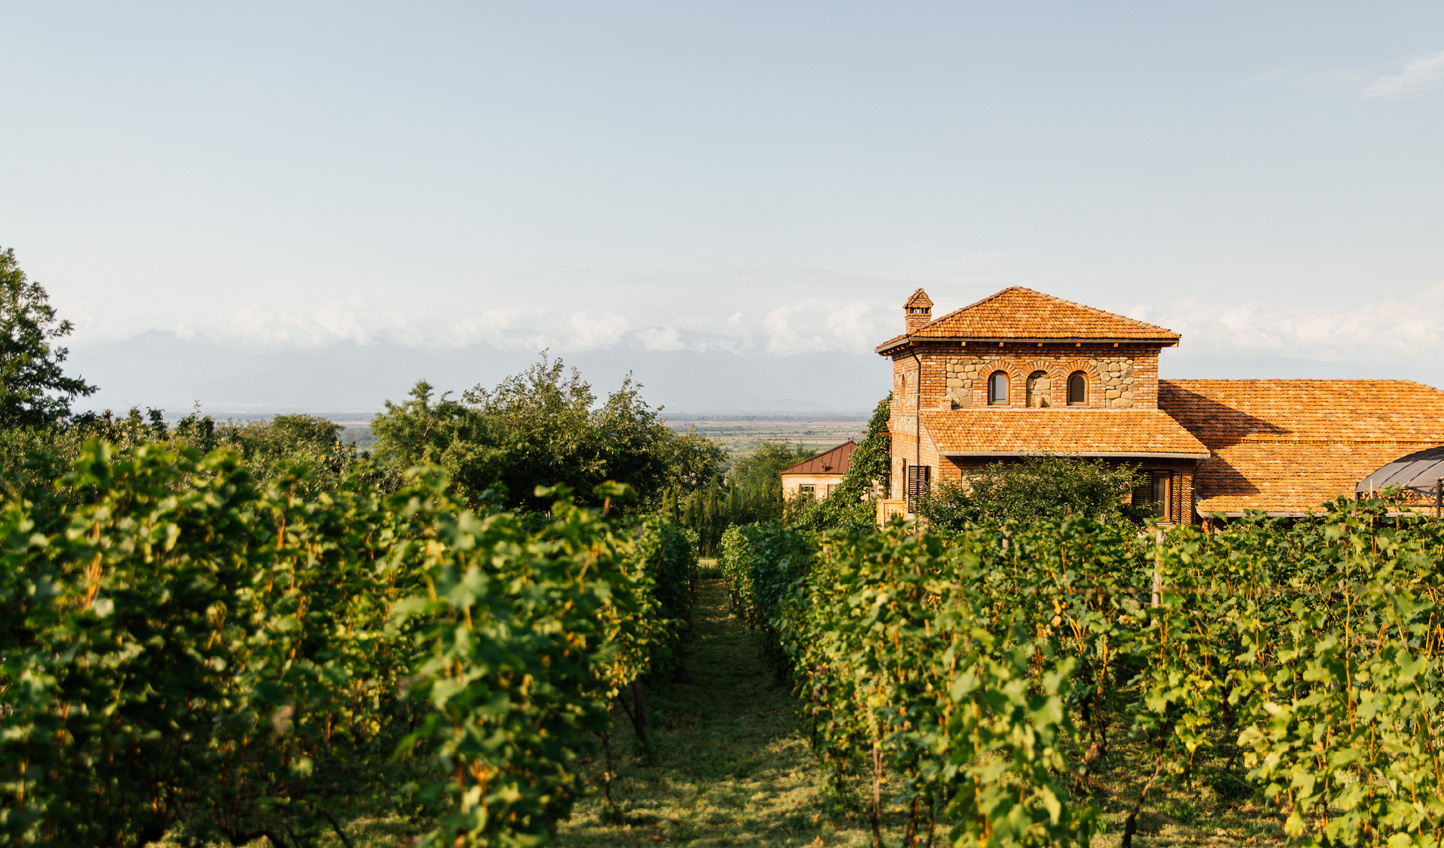 Discover the heart of the Georgian wine country from Chateau Svanidze